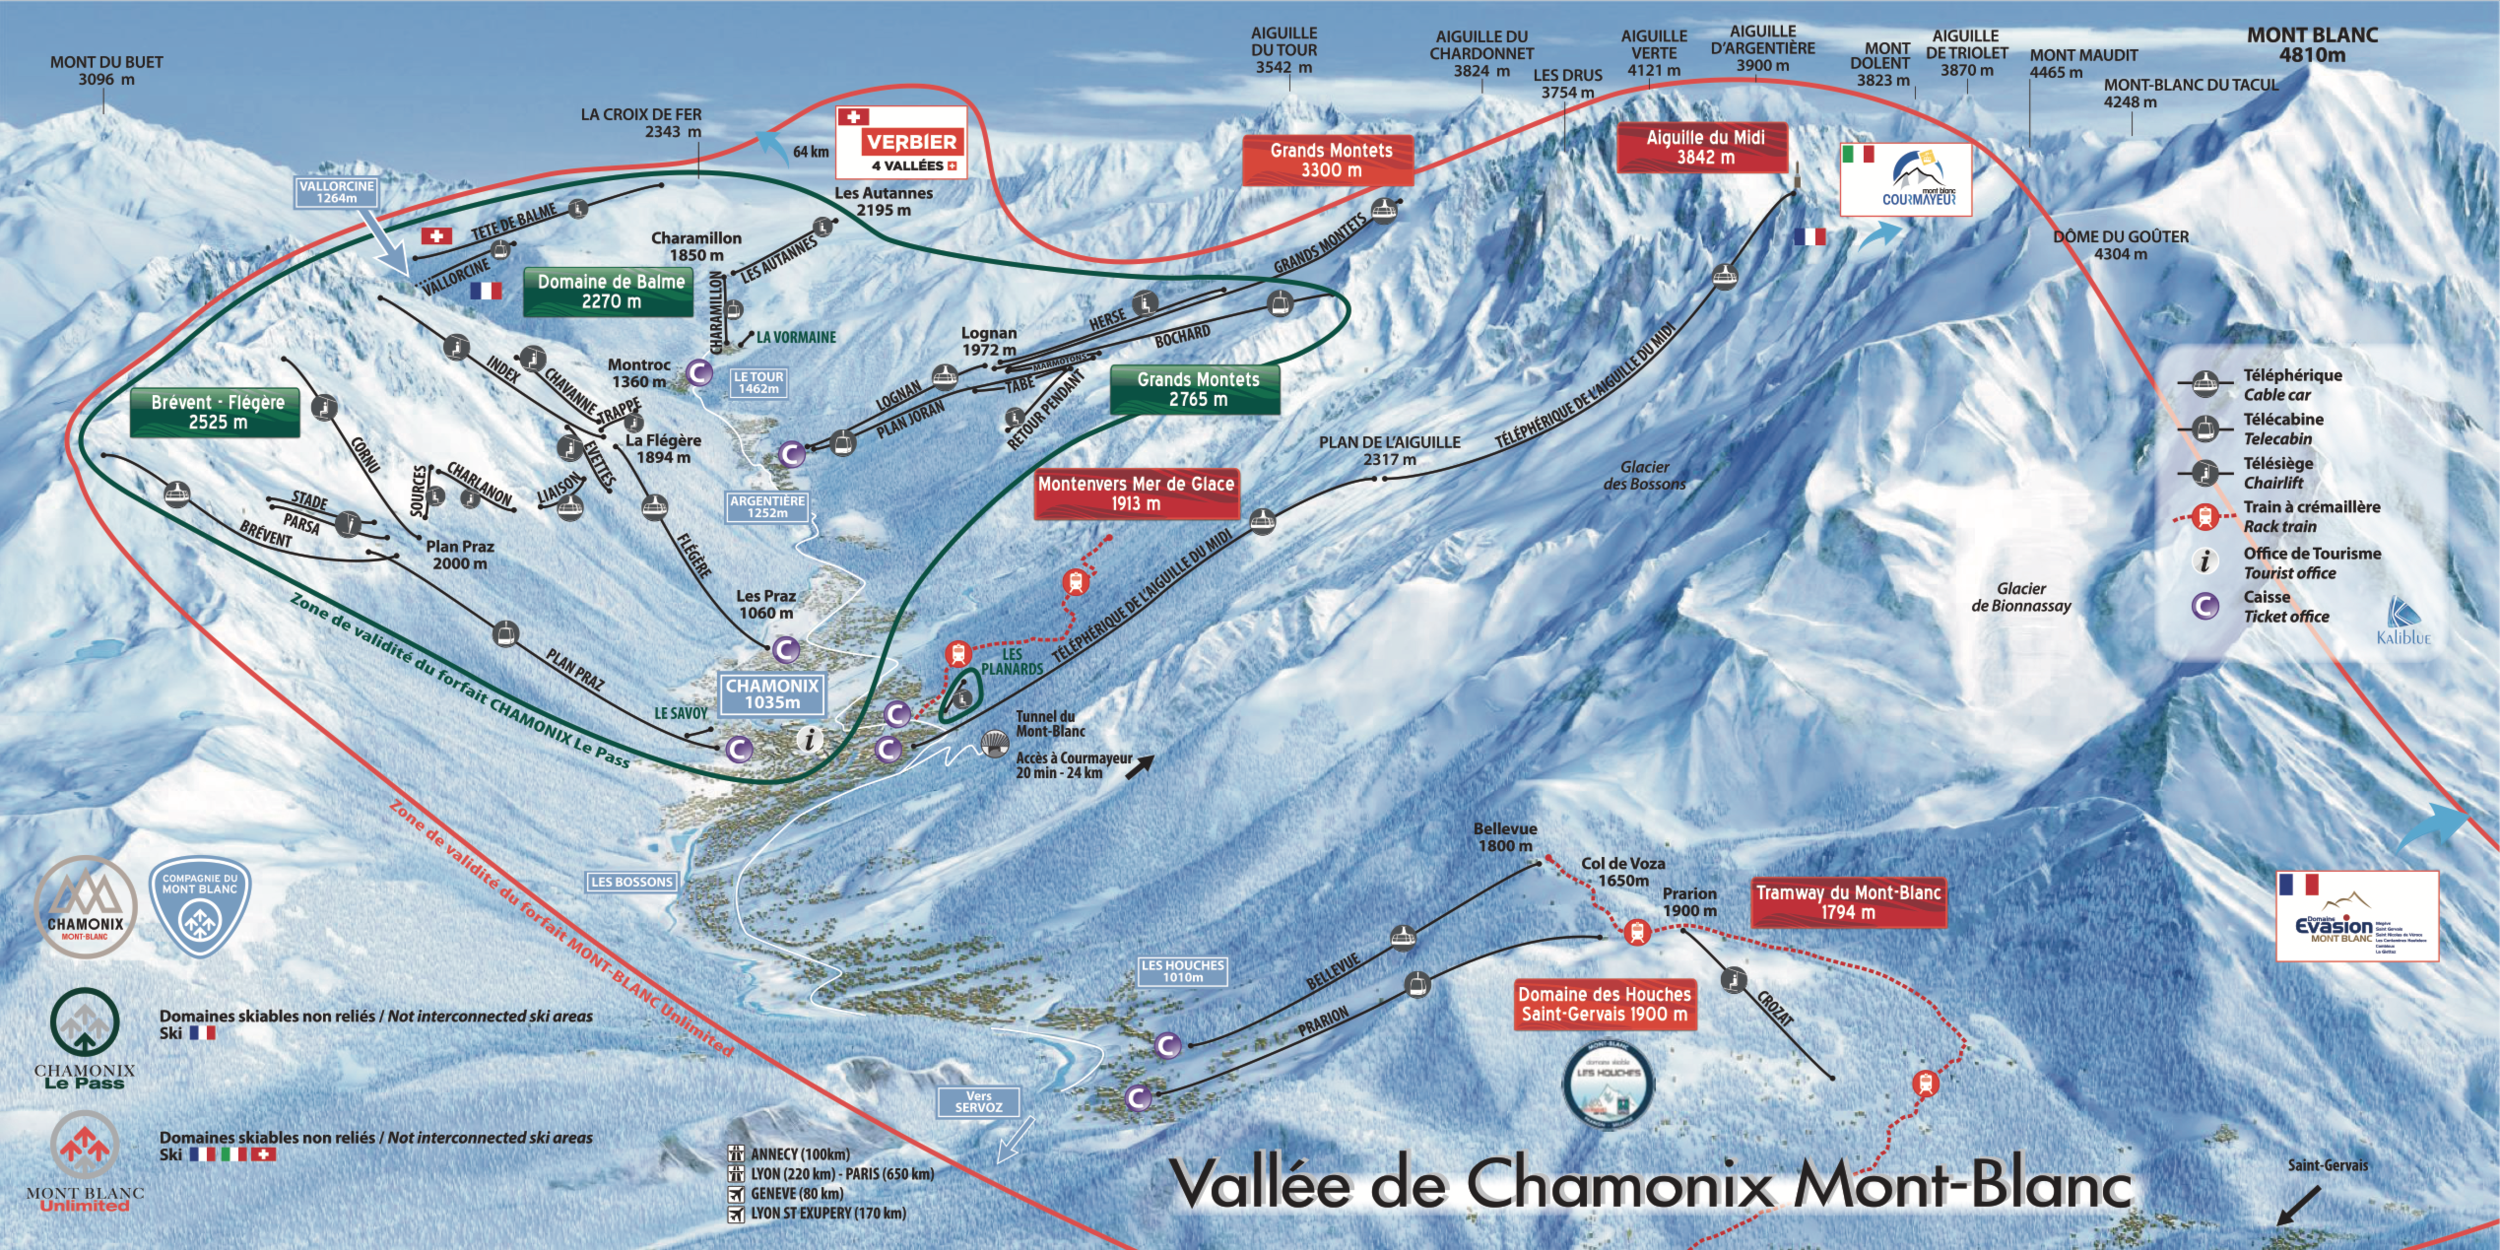 SKII MAPS - Skiing in Chamonix ValleyThe Chamonix Valley is 16km's long, made up of five major ski stations. The valley has an excellent snow record with 90% of the ski area above 2000m, making it one of the most snow sure resorts in Europe. With over 150km's of patrolled ski runs, limitless off piste opportunities including the infamous la Vallee Blanche and four dedicated nursery slopes for beginners, the Chamonix Valley offers a little something for everyone.For more information, please visit their website https://www.marmottemountain.com/local-info/winter-in-chamonix/